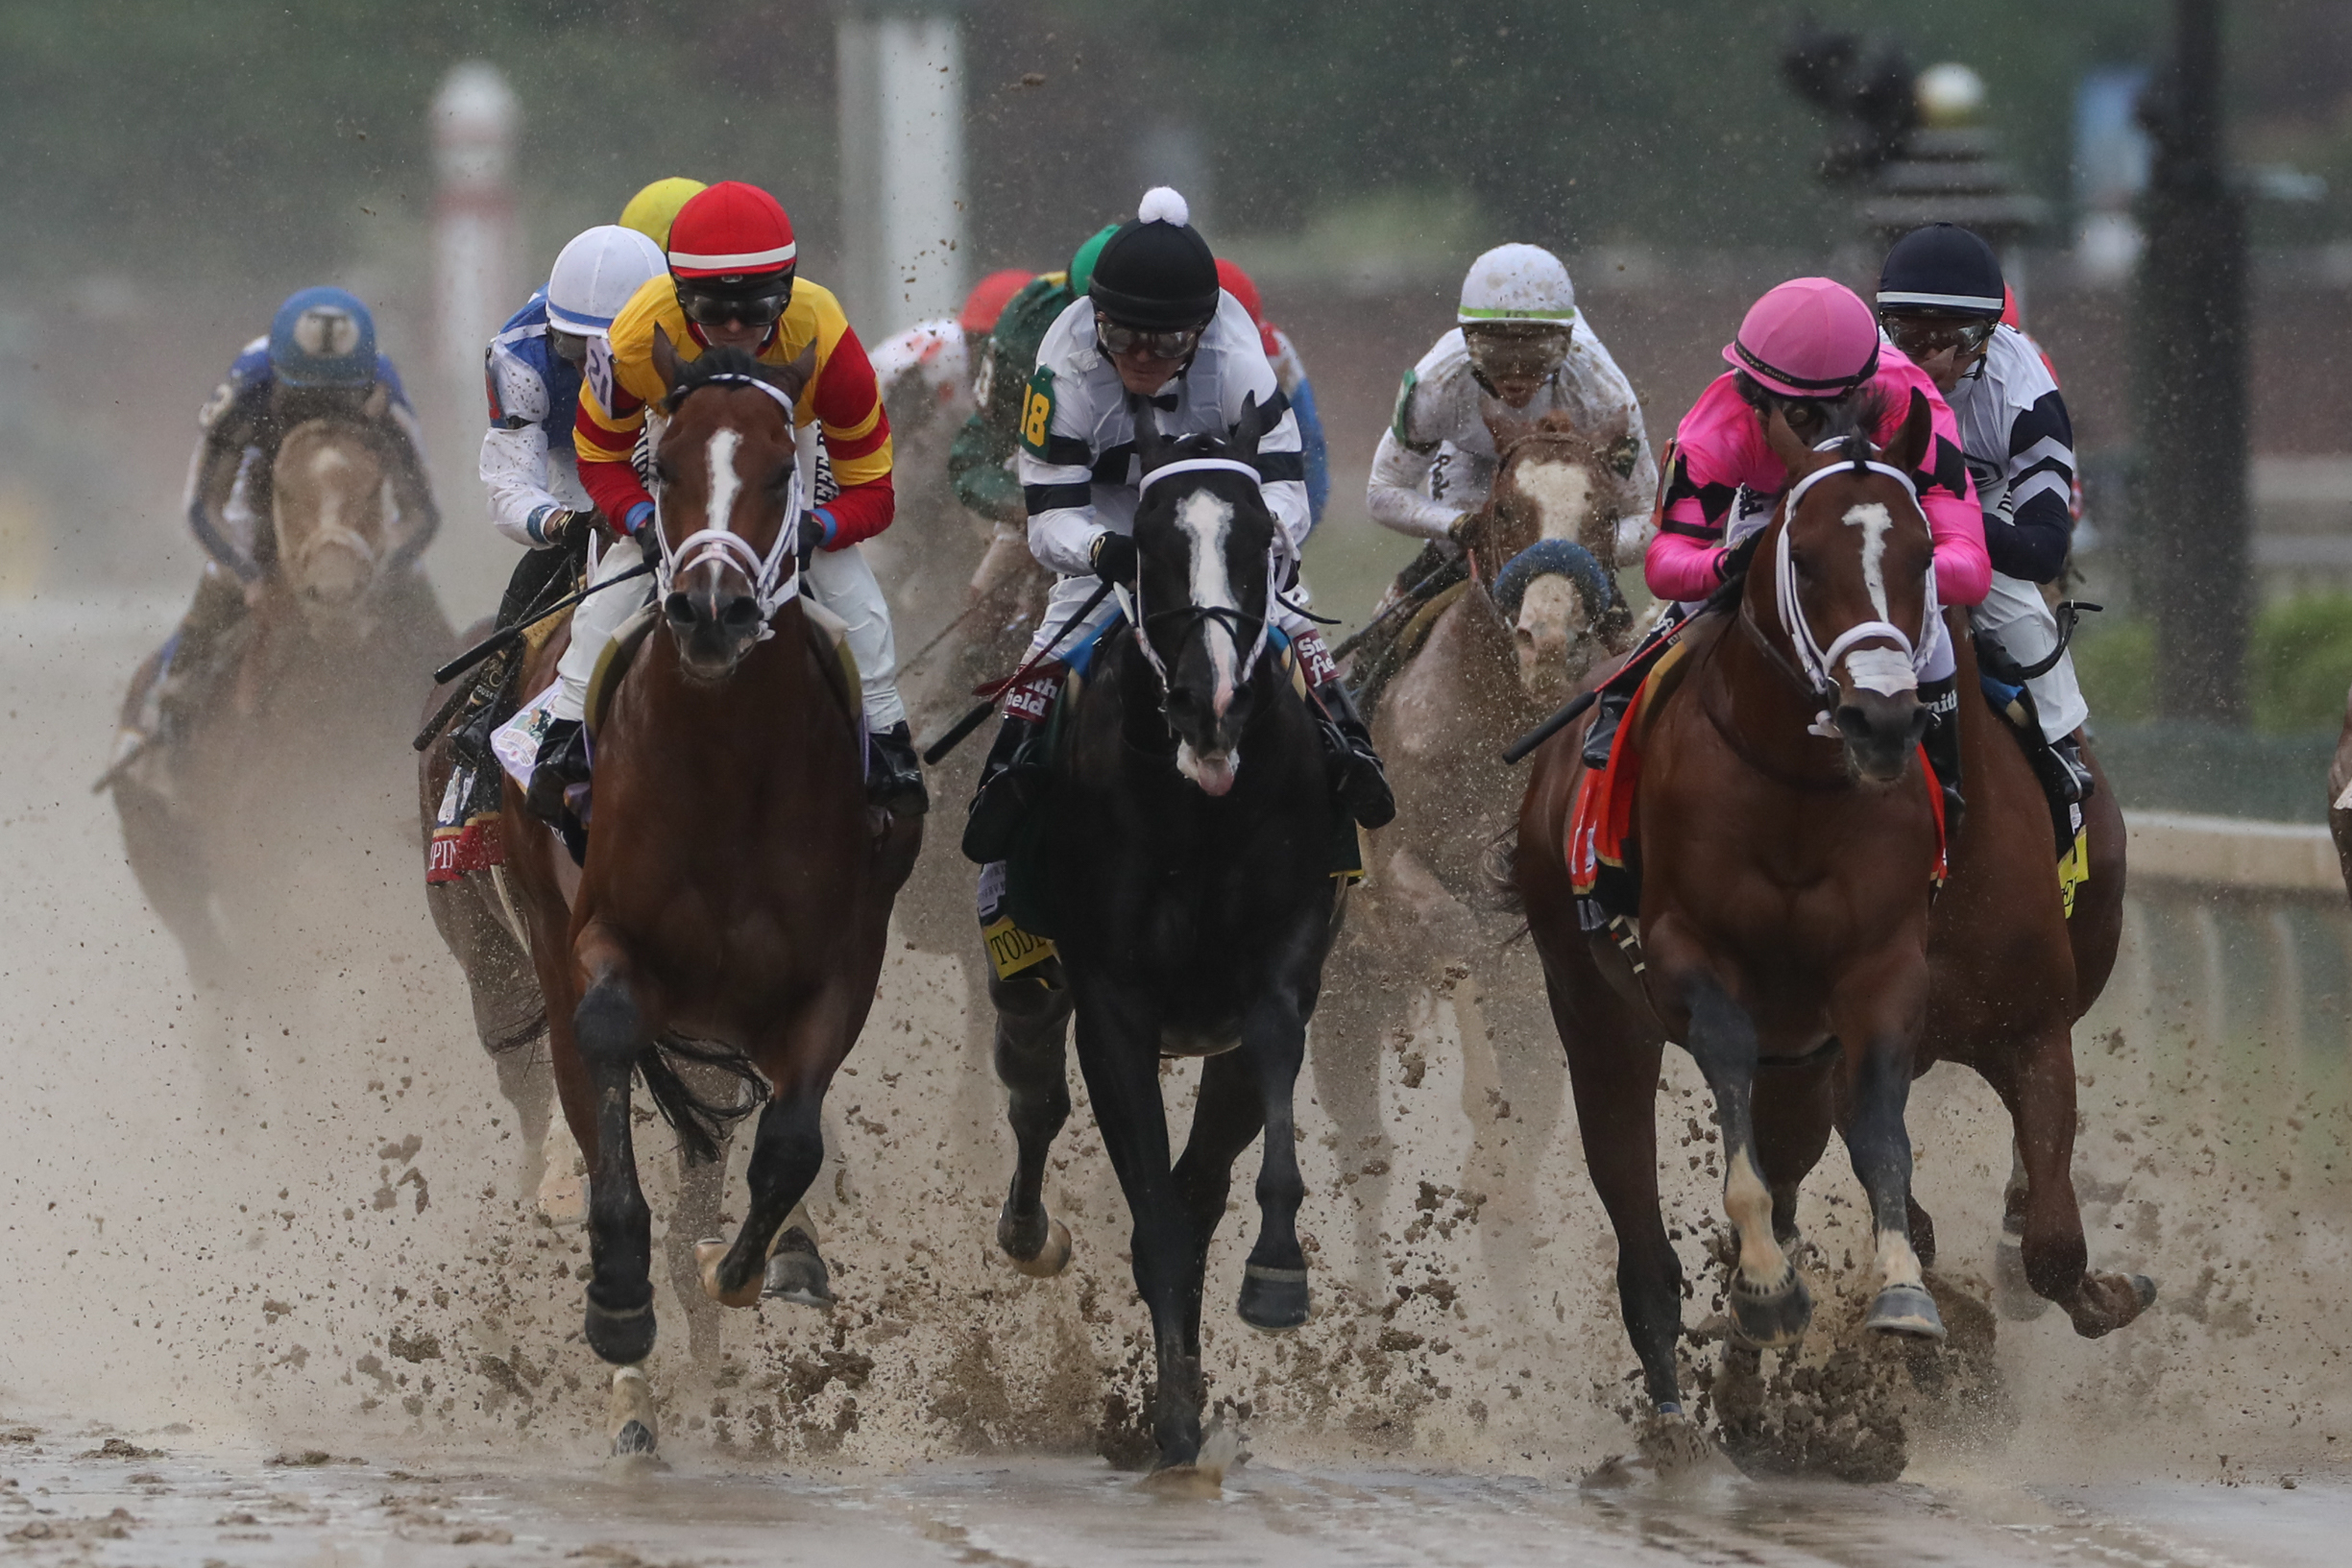 The unprecedented disqualification of a Kentucky Derby winner, explained